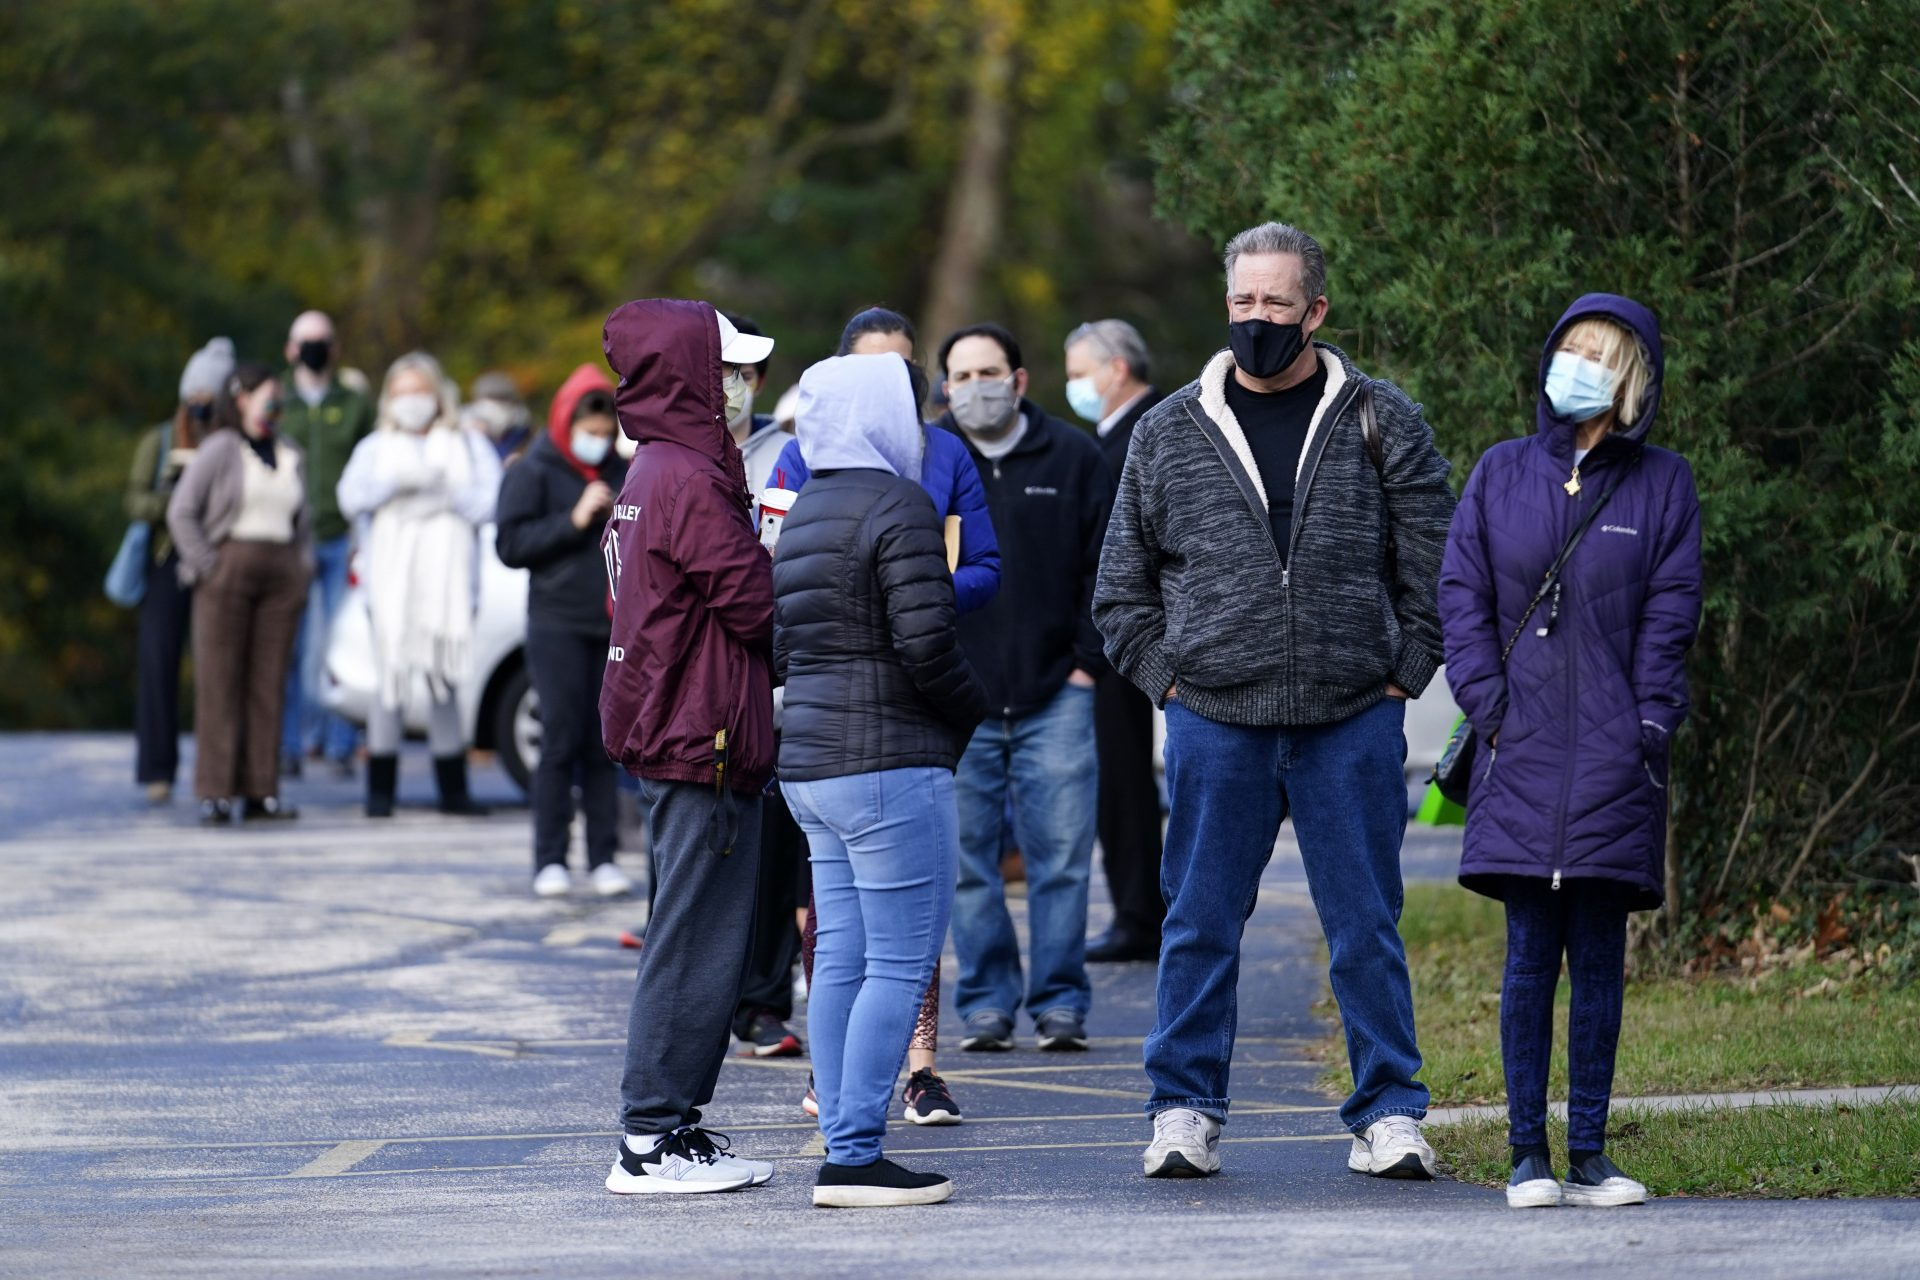 People wait outside a polling place to cast their ballots in the 2020 on Election Day, Tuesday, Nov. 3, 2020, in Media, Pa.